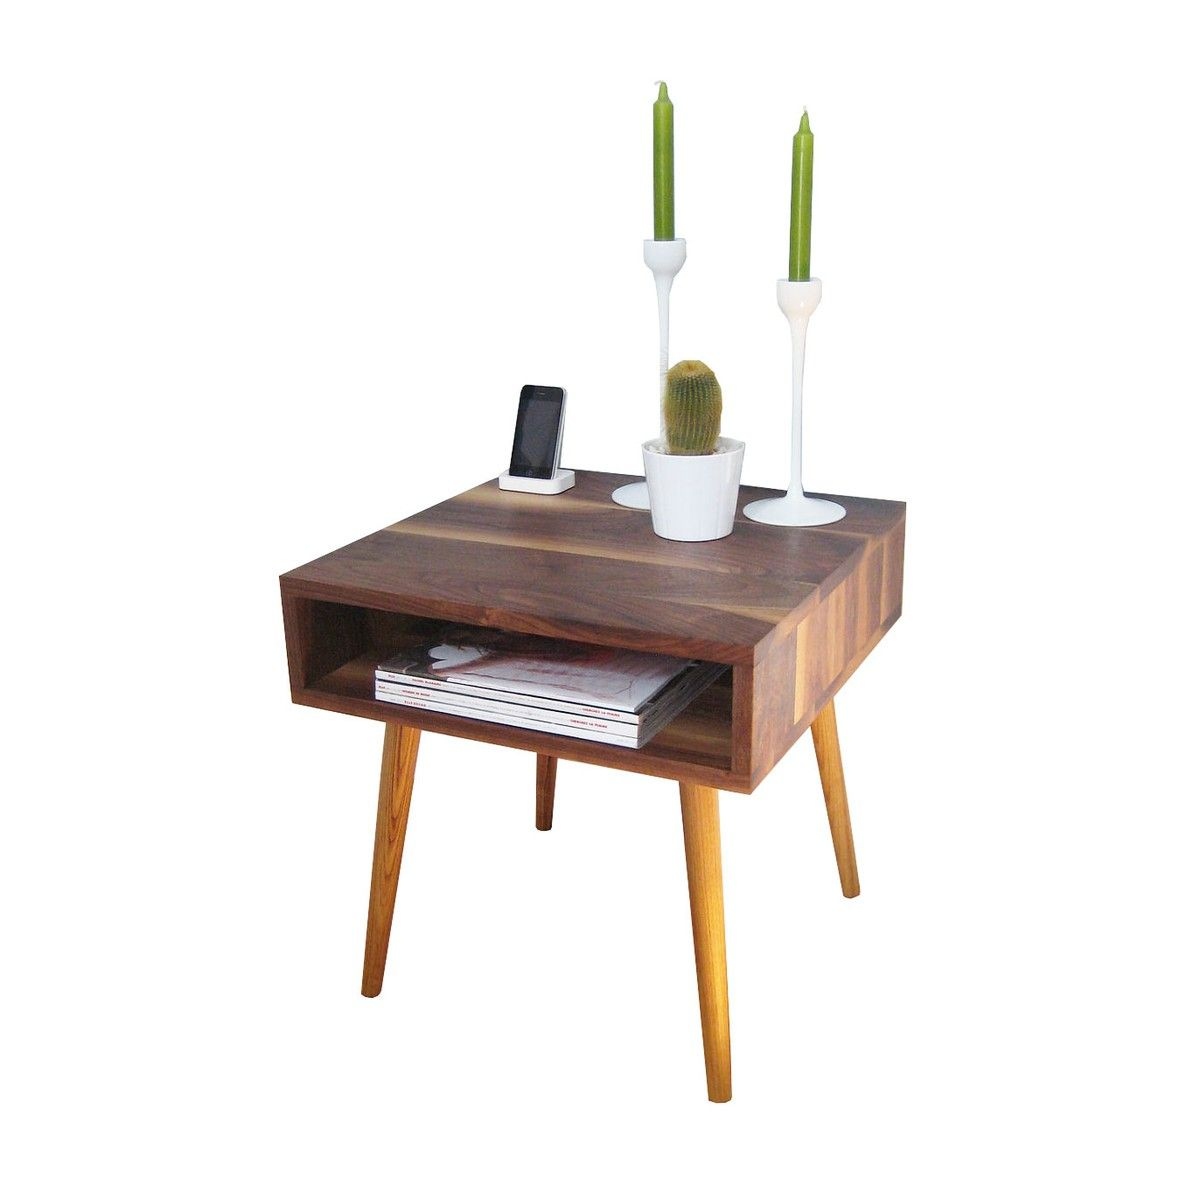 Handmade in san francisco from solid walnut and oak this hip accent